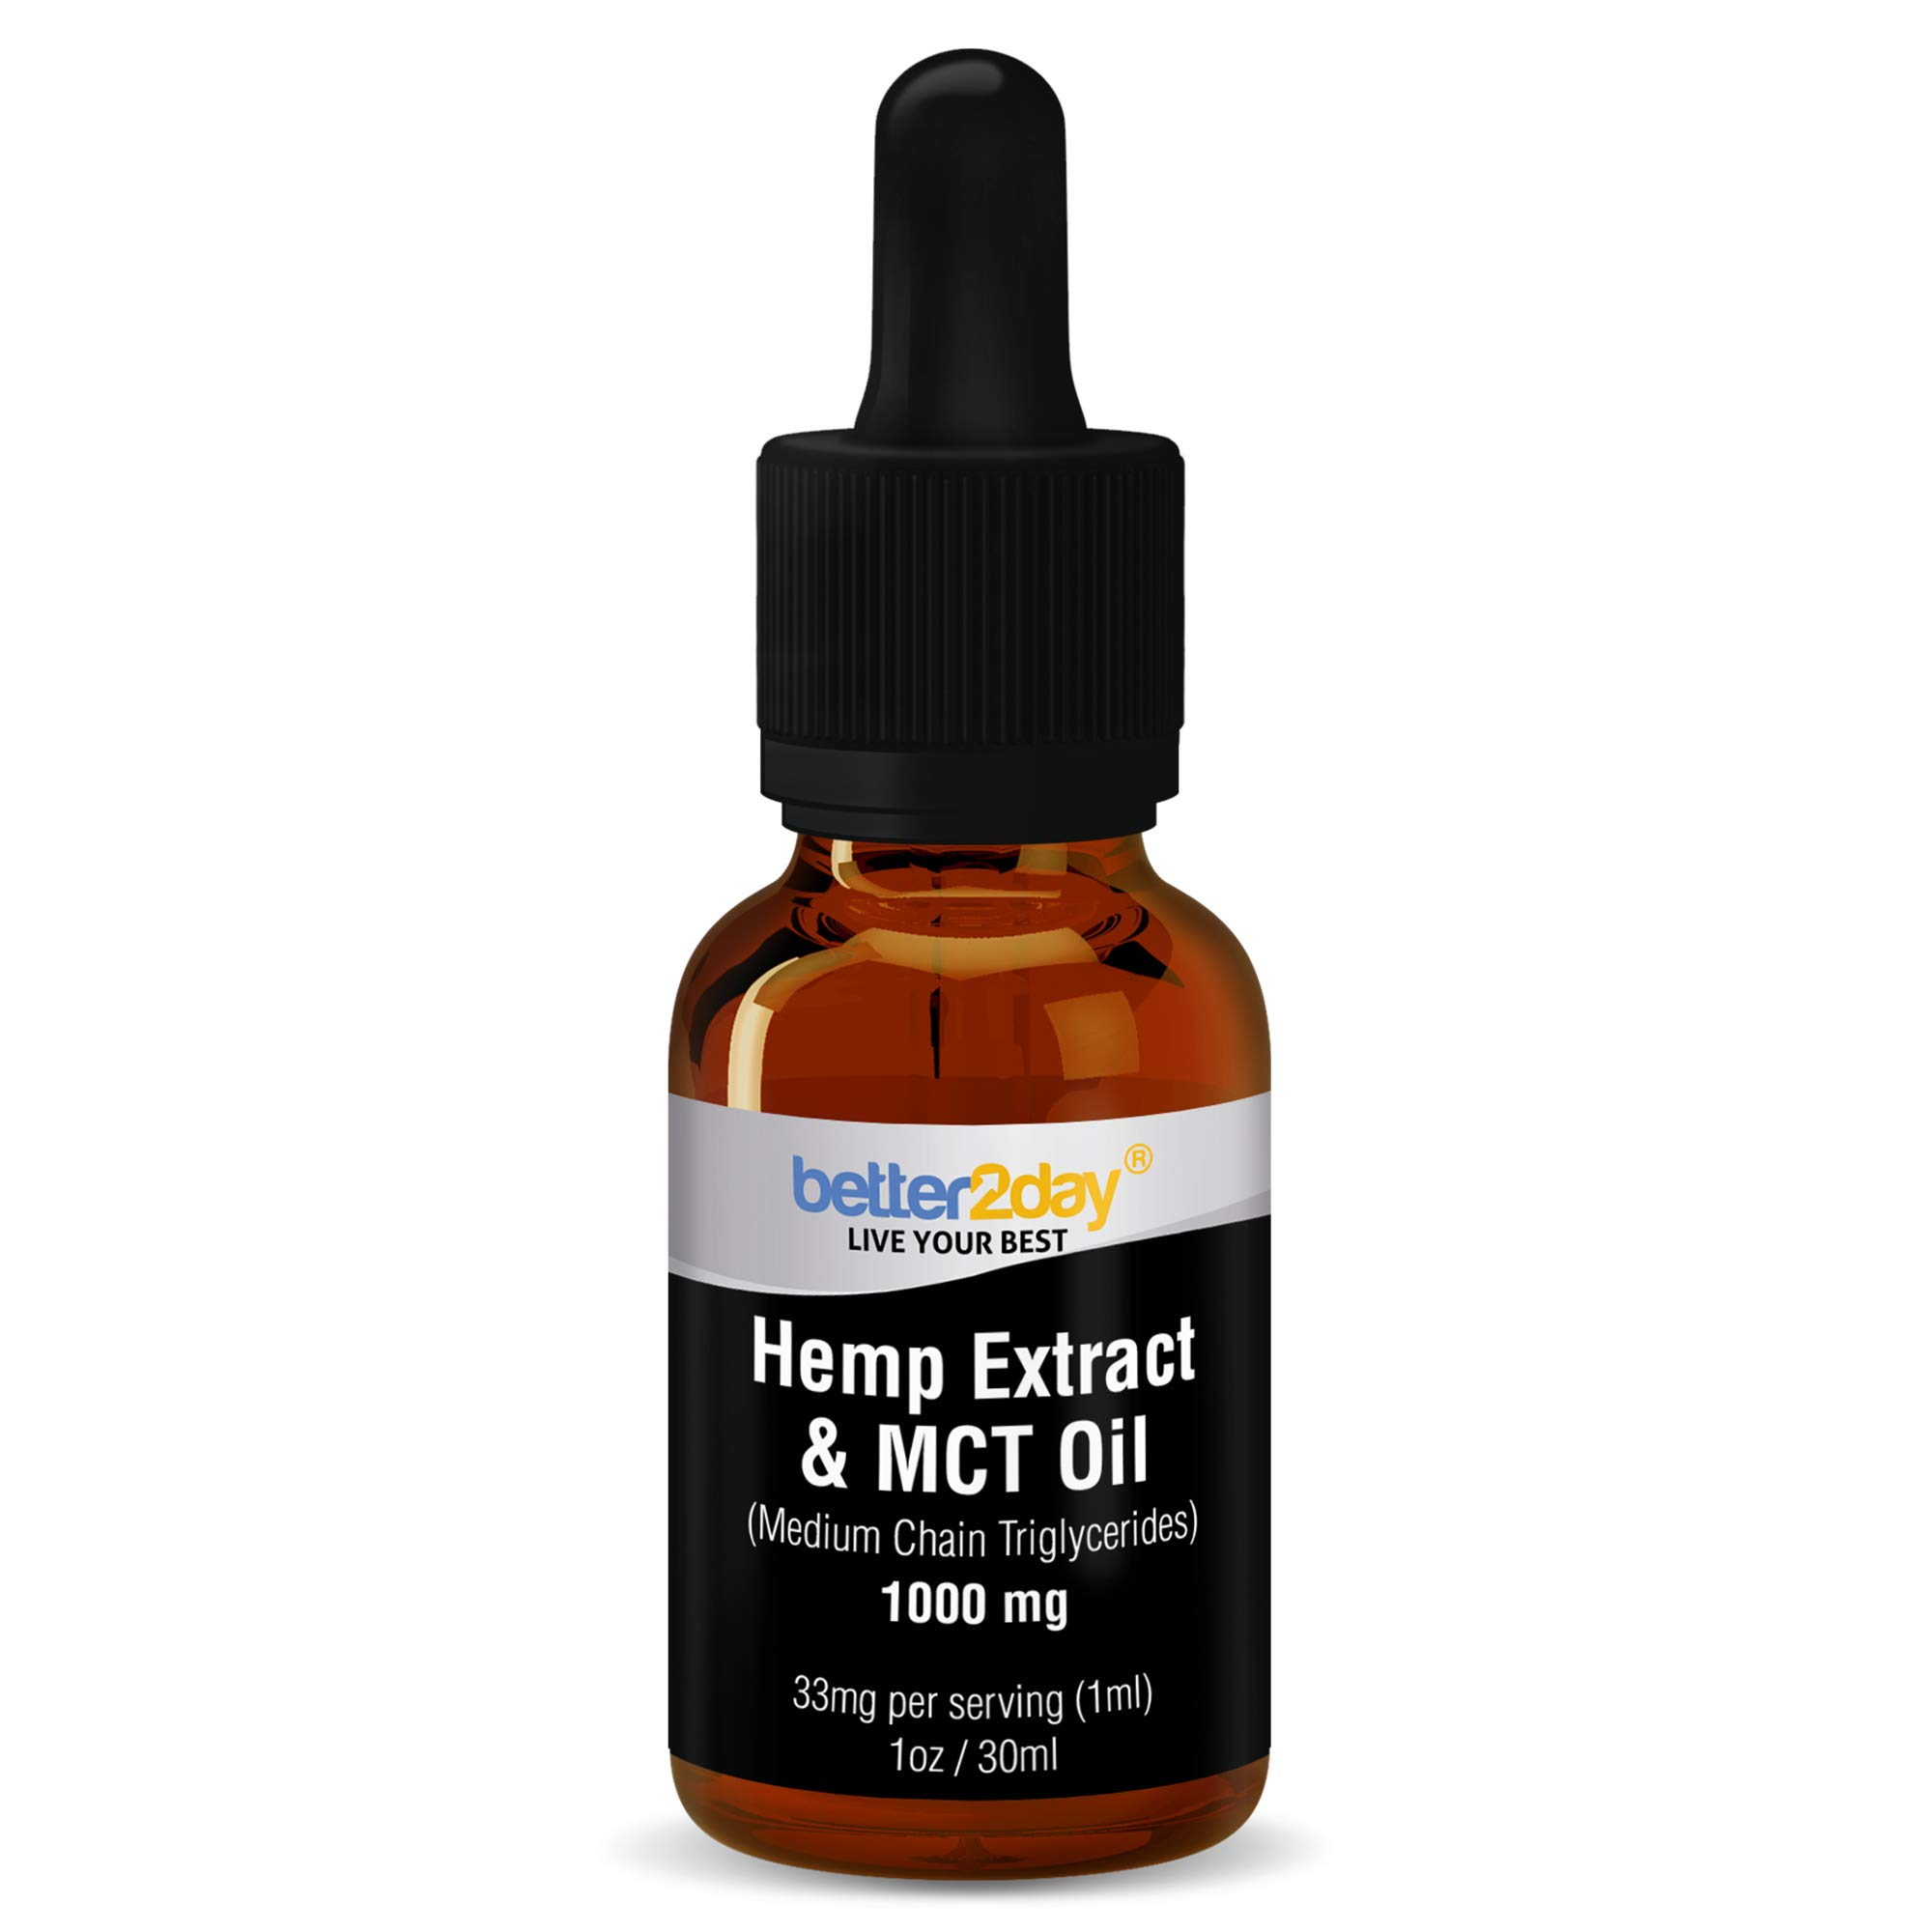 Hemp Extract + MCT Oil (1000mg) - From 100% Organic Colorado Grown Hemp Seed By Better2Day. Rich in Omega 3, 6 Fatty Acids. Natural Anti Inflammatory. Helps with Anxiety, Sleep, Mood, Skin and Hair